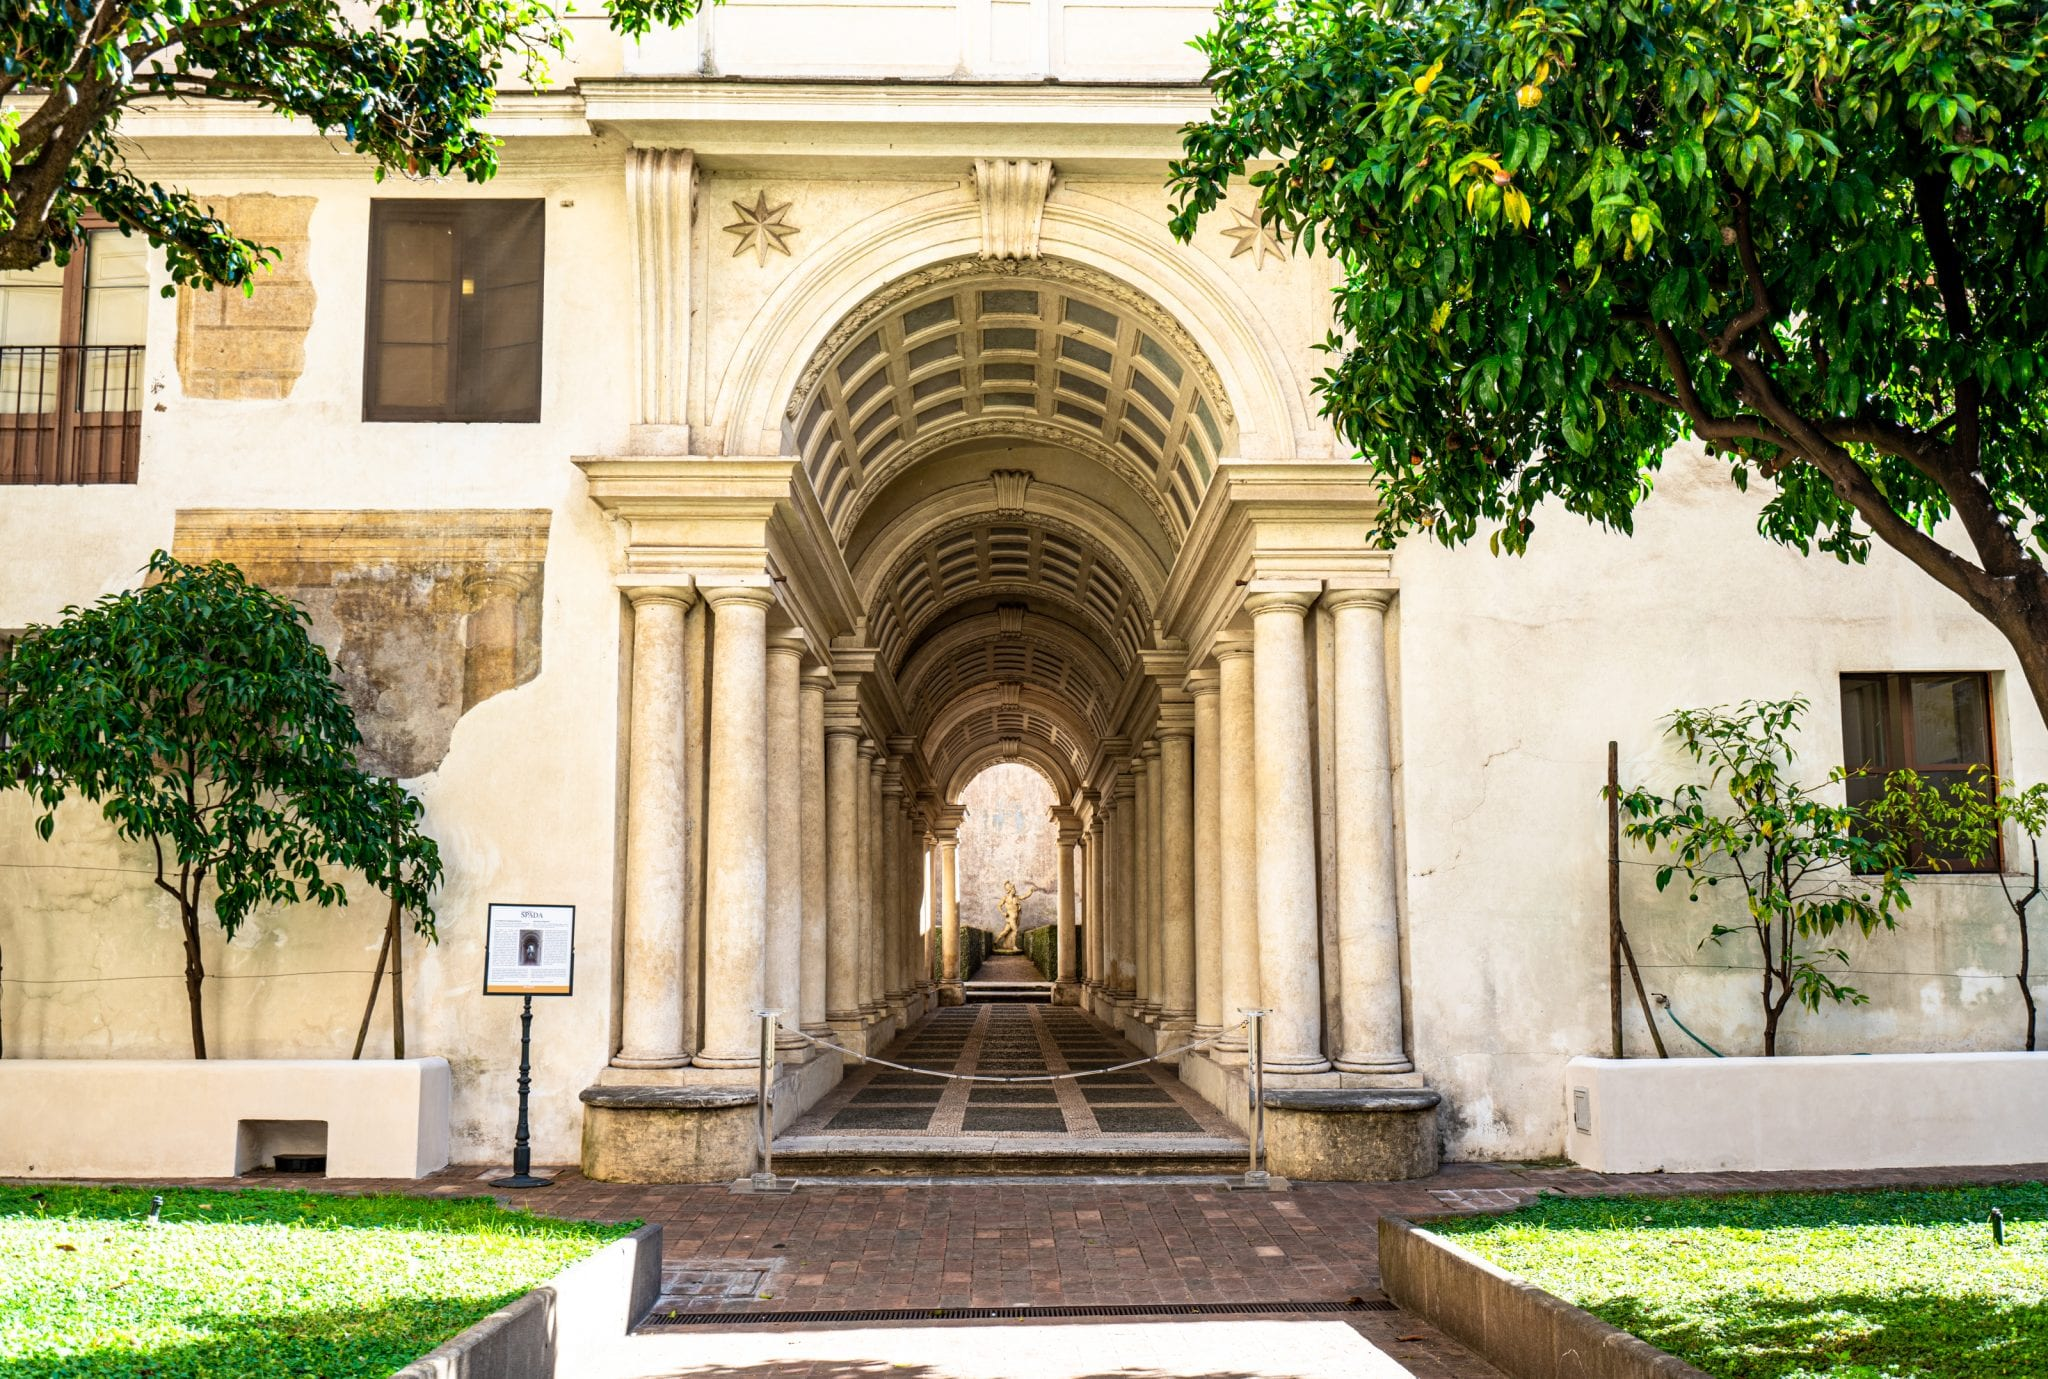 Borromini Forced Perspective Gallery at Palazzo Spada, shot from across the garden